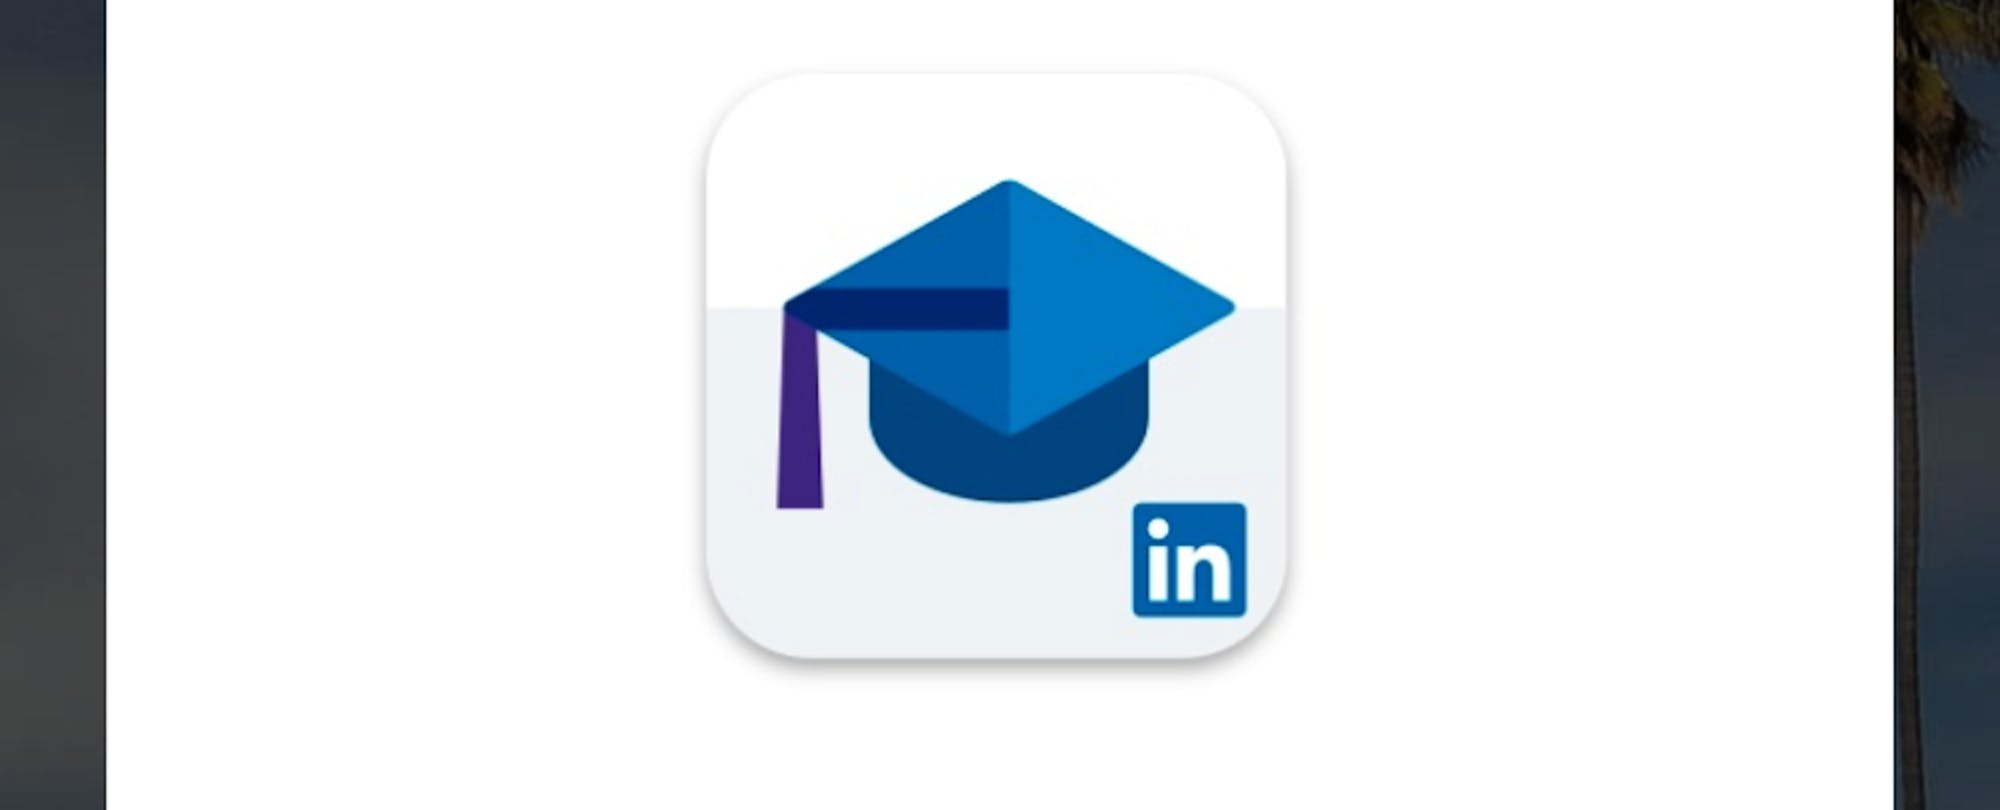 linkedin launches standalone app aimed at job seeking recent linkedin launches standalone app aimed at job seeking recent graduates